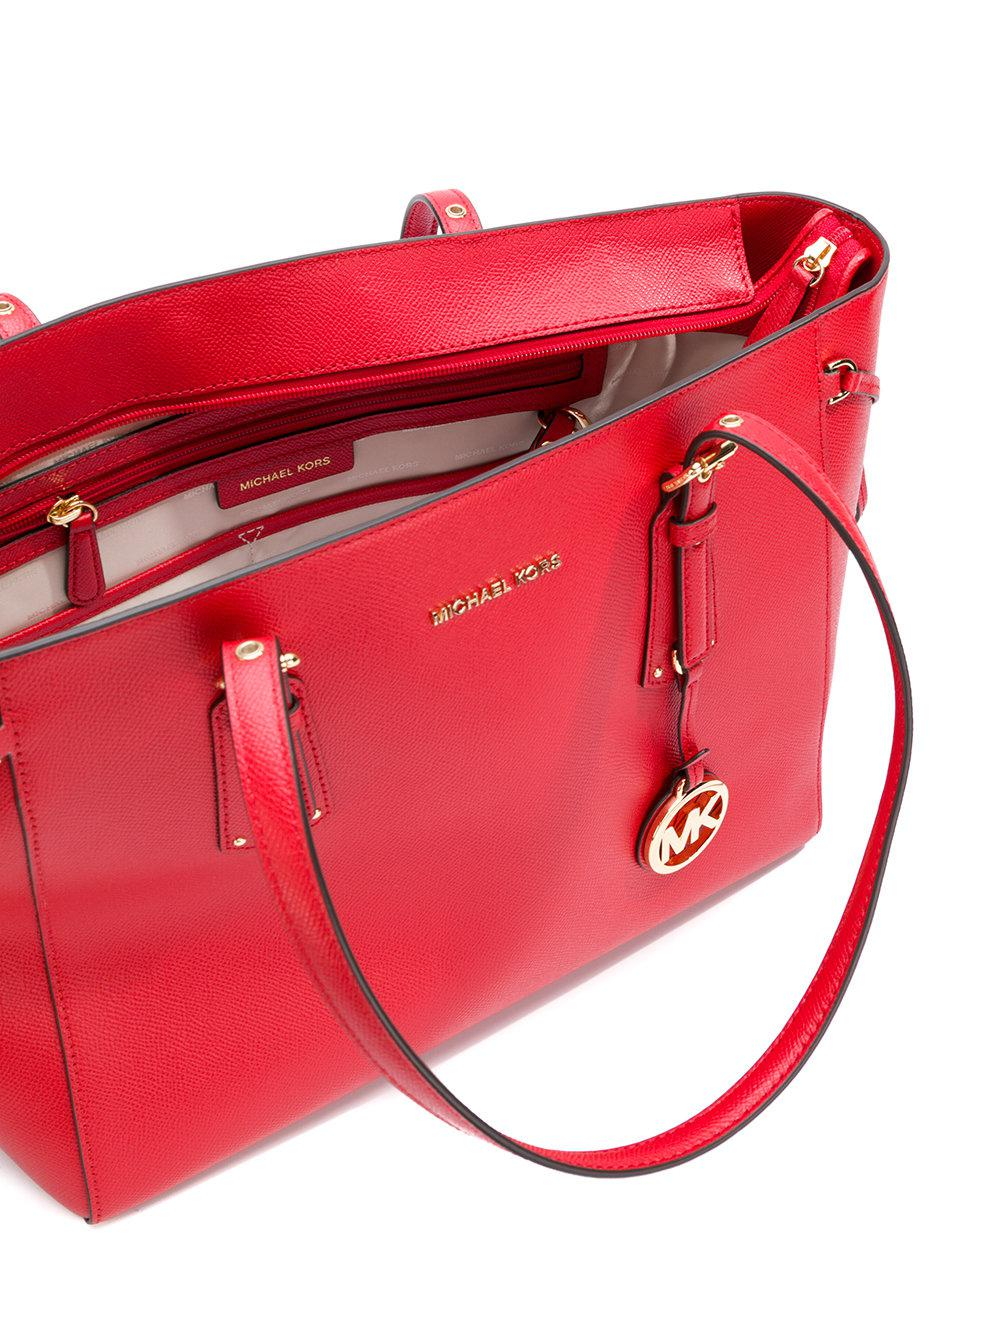 MICHAEL Michael Kors Leather Voyager Tote in Red